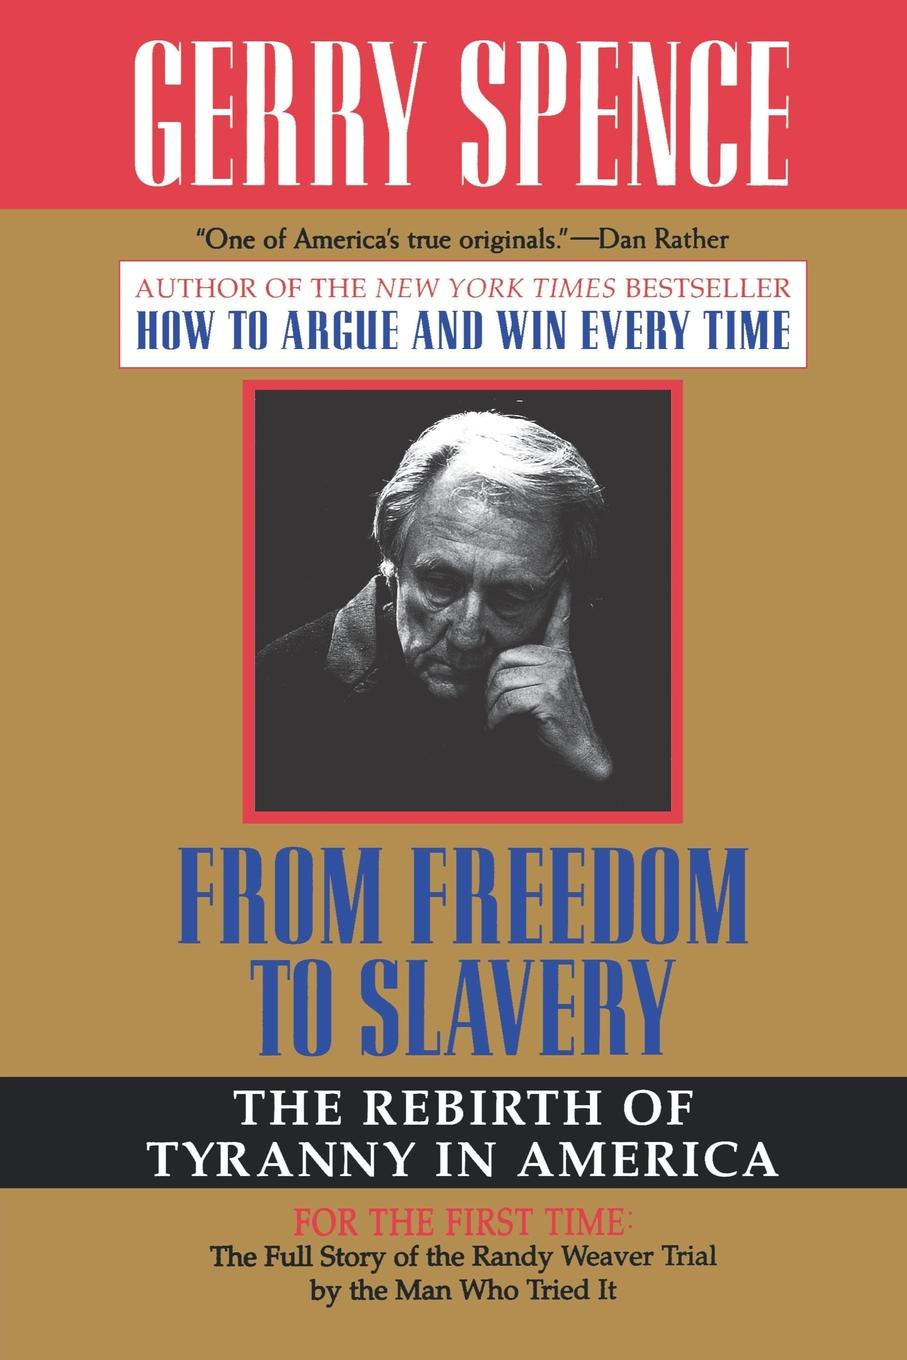 Gerry L. Spence From Freedom to Slavery. The Rebirth of Tyranny in America the biography of mahommah gardo baquaqua his passage from slavery to freedom in africa and america